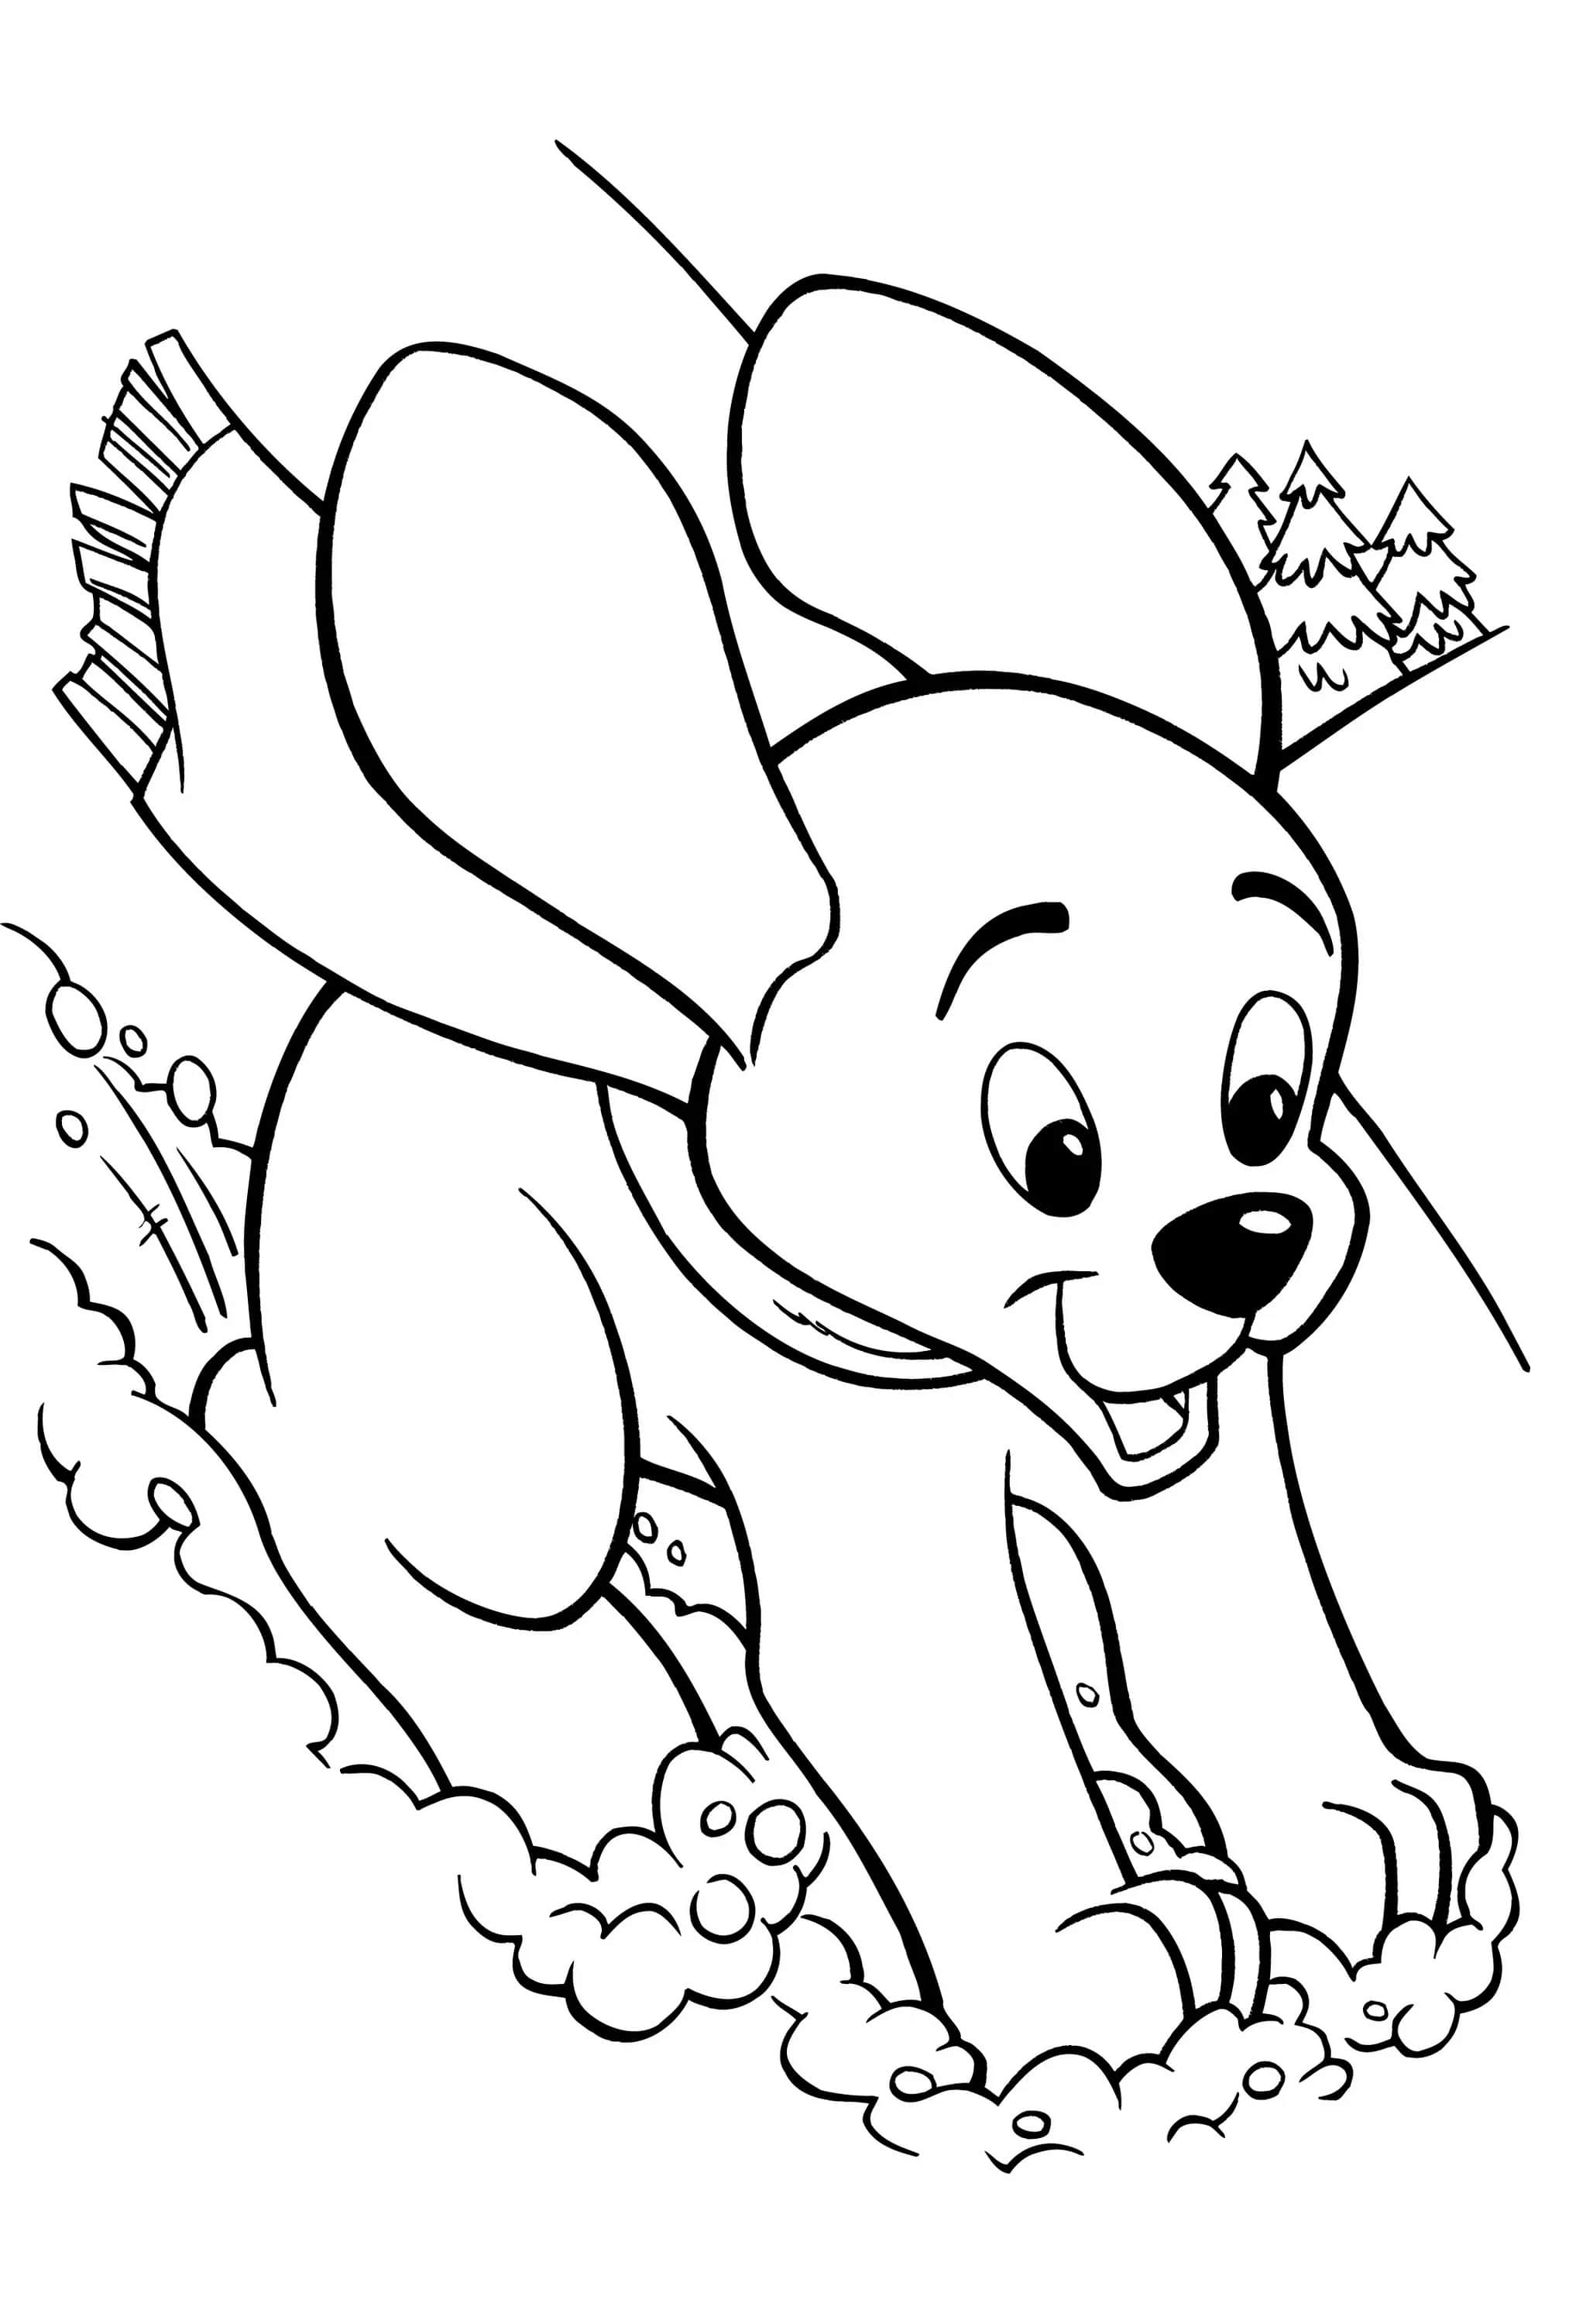 kids dog coloring pages beagle coloring pages best coloring pages for kids kids dog coloring pages